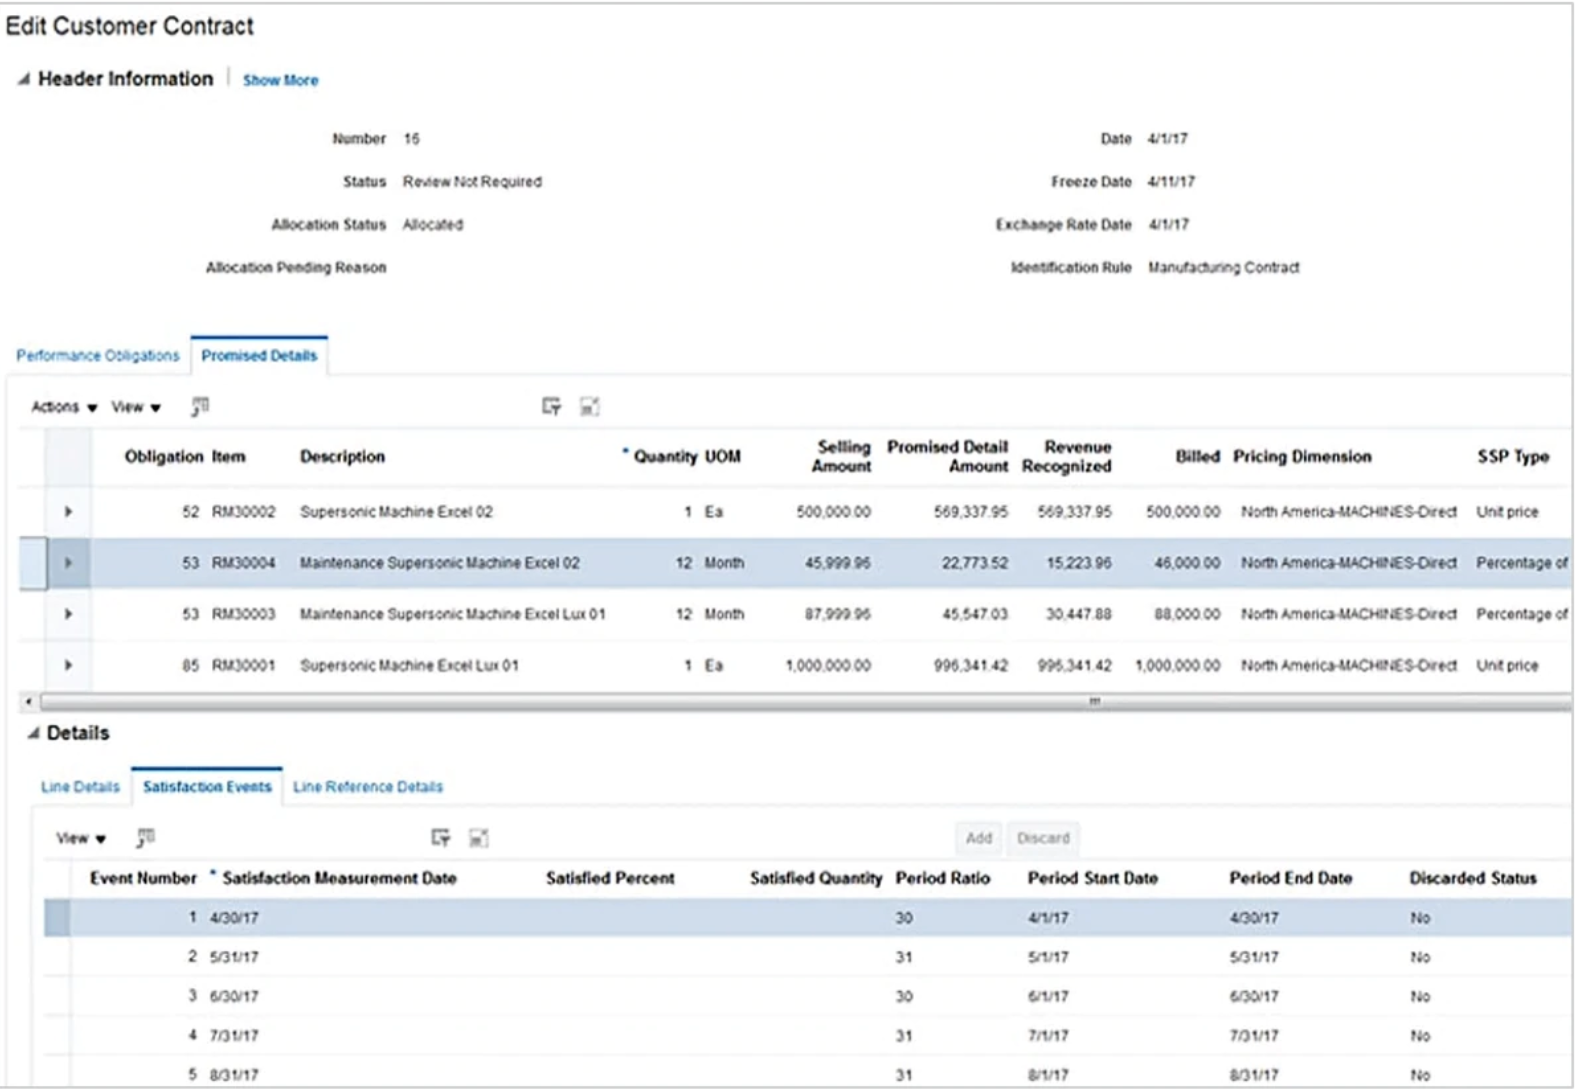 Oracle Financials Cloud contract management